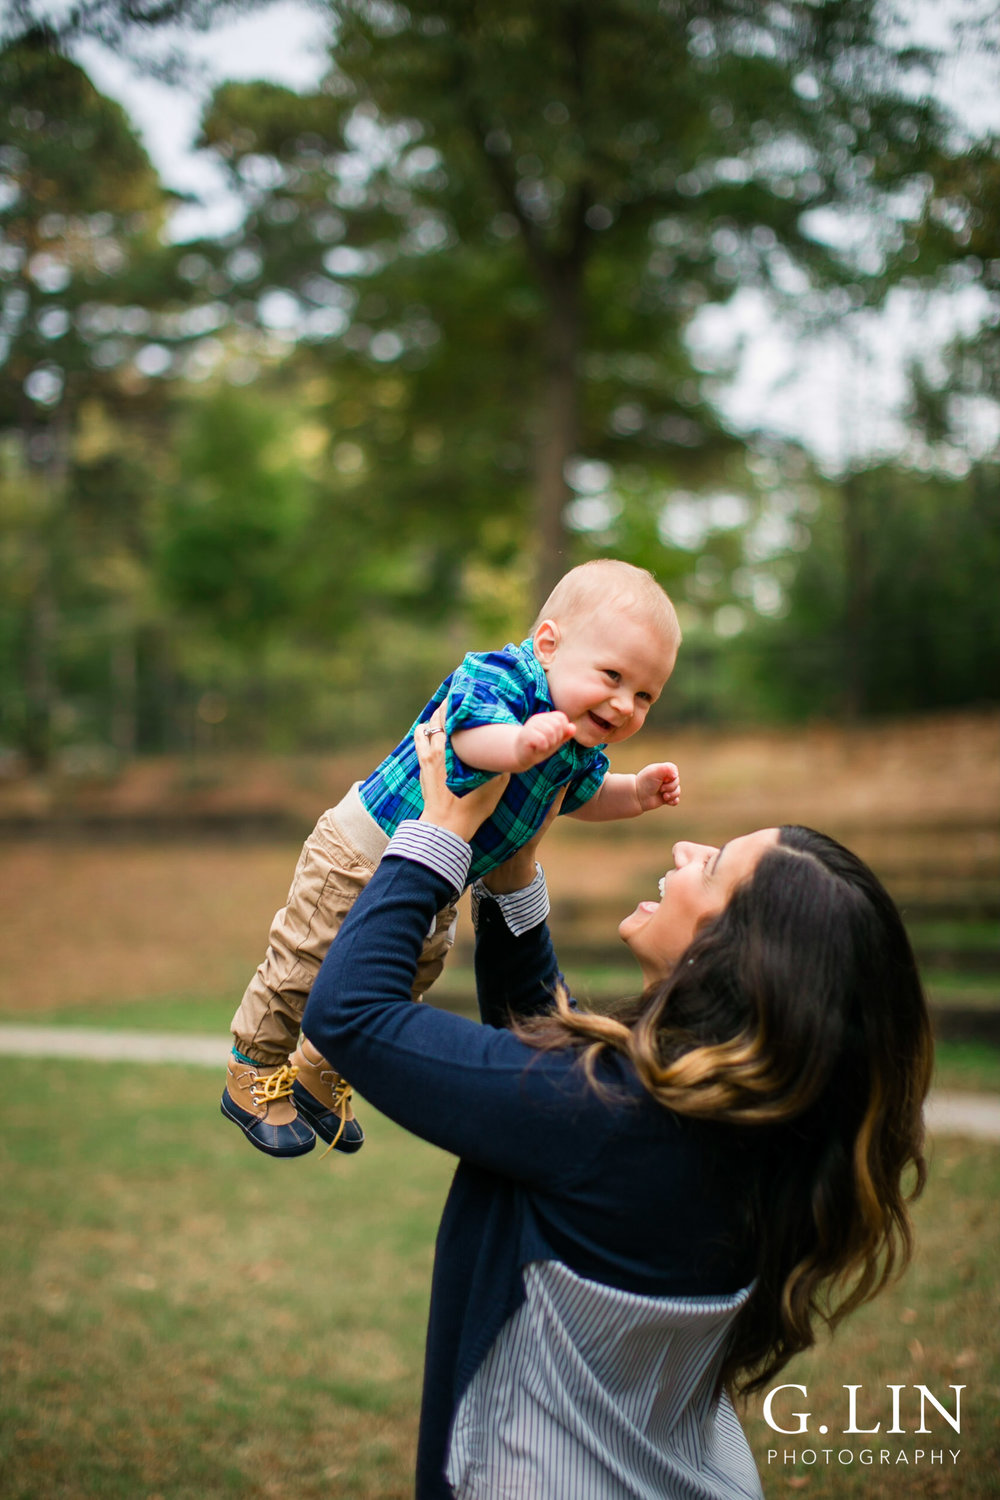 Raleigh Newborn Baby Photographer | G. Lin Photography | Mom playing with baby outside in park